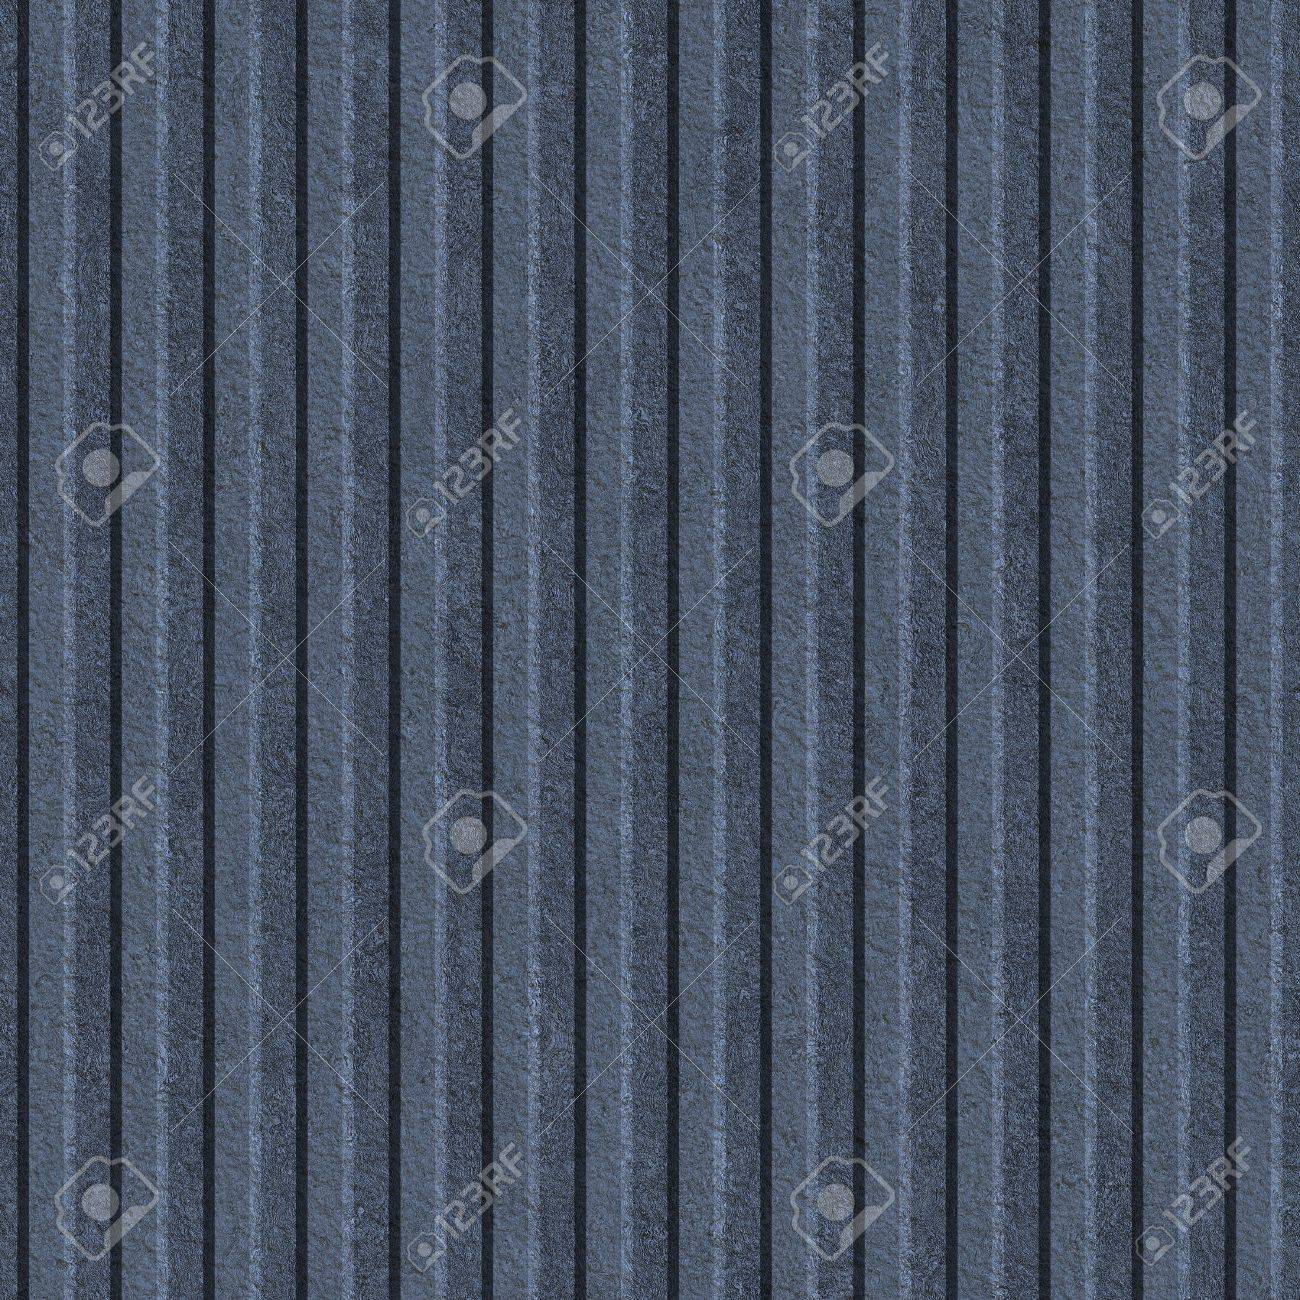 Corrugated Metal  Seamless texture  Stock Photo   14231926. Corrugated Metal  Seamless Texture  Stock Photo  Picture And